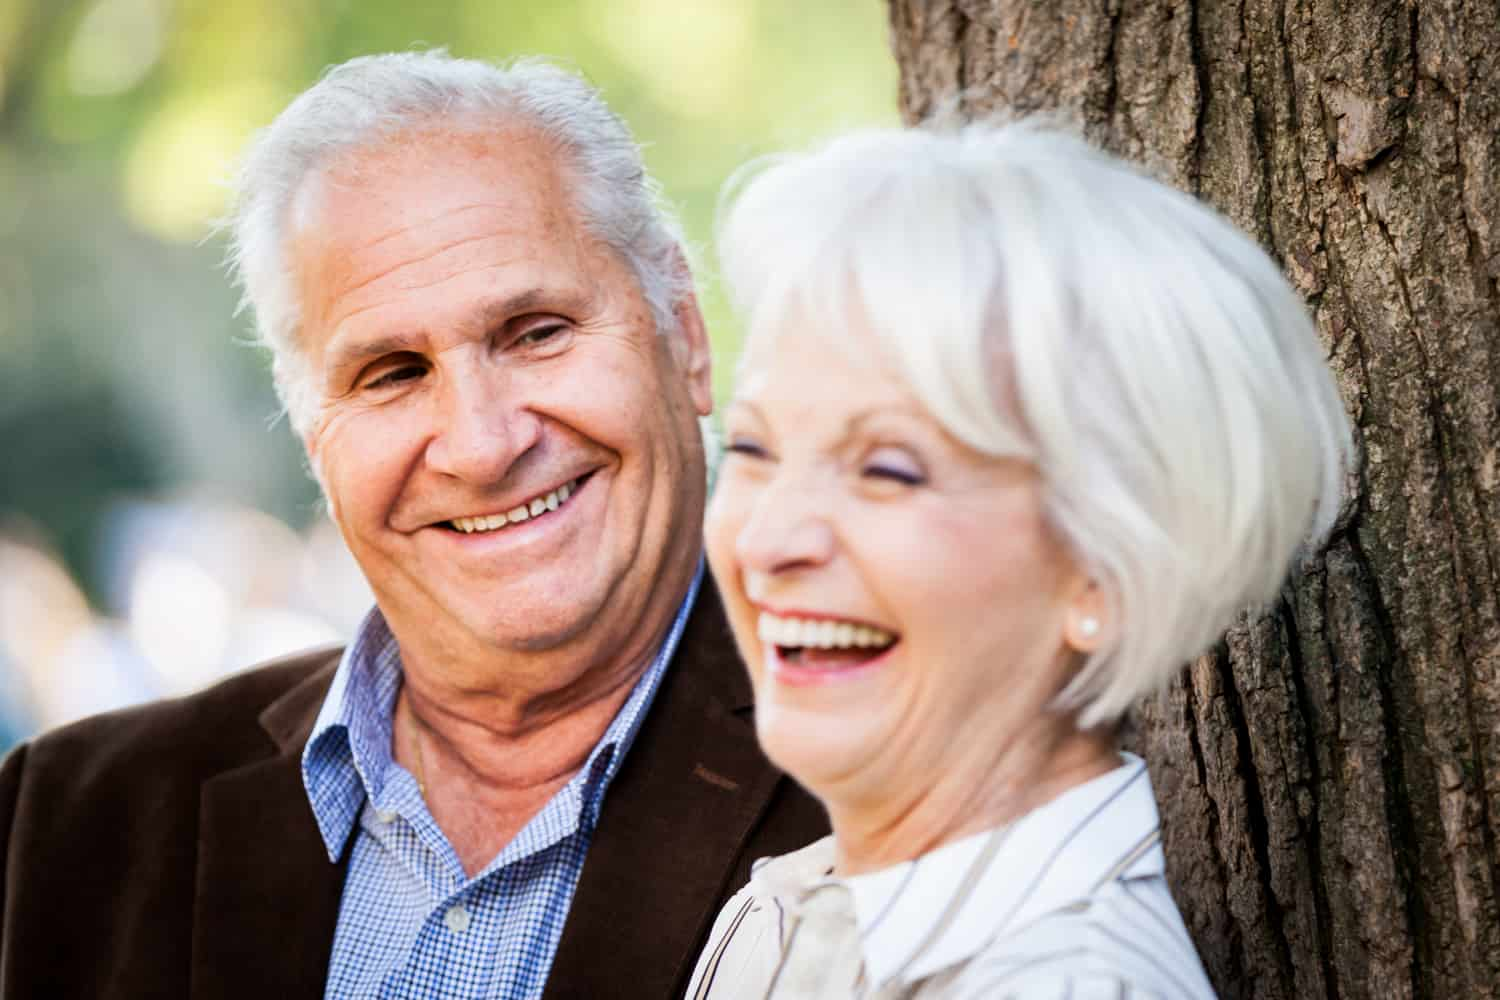 Older man looking at laughing older woman